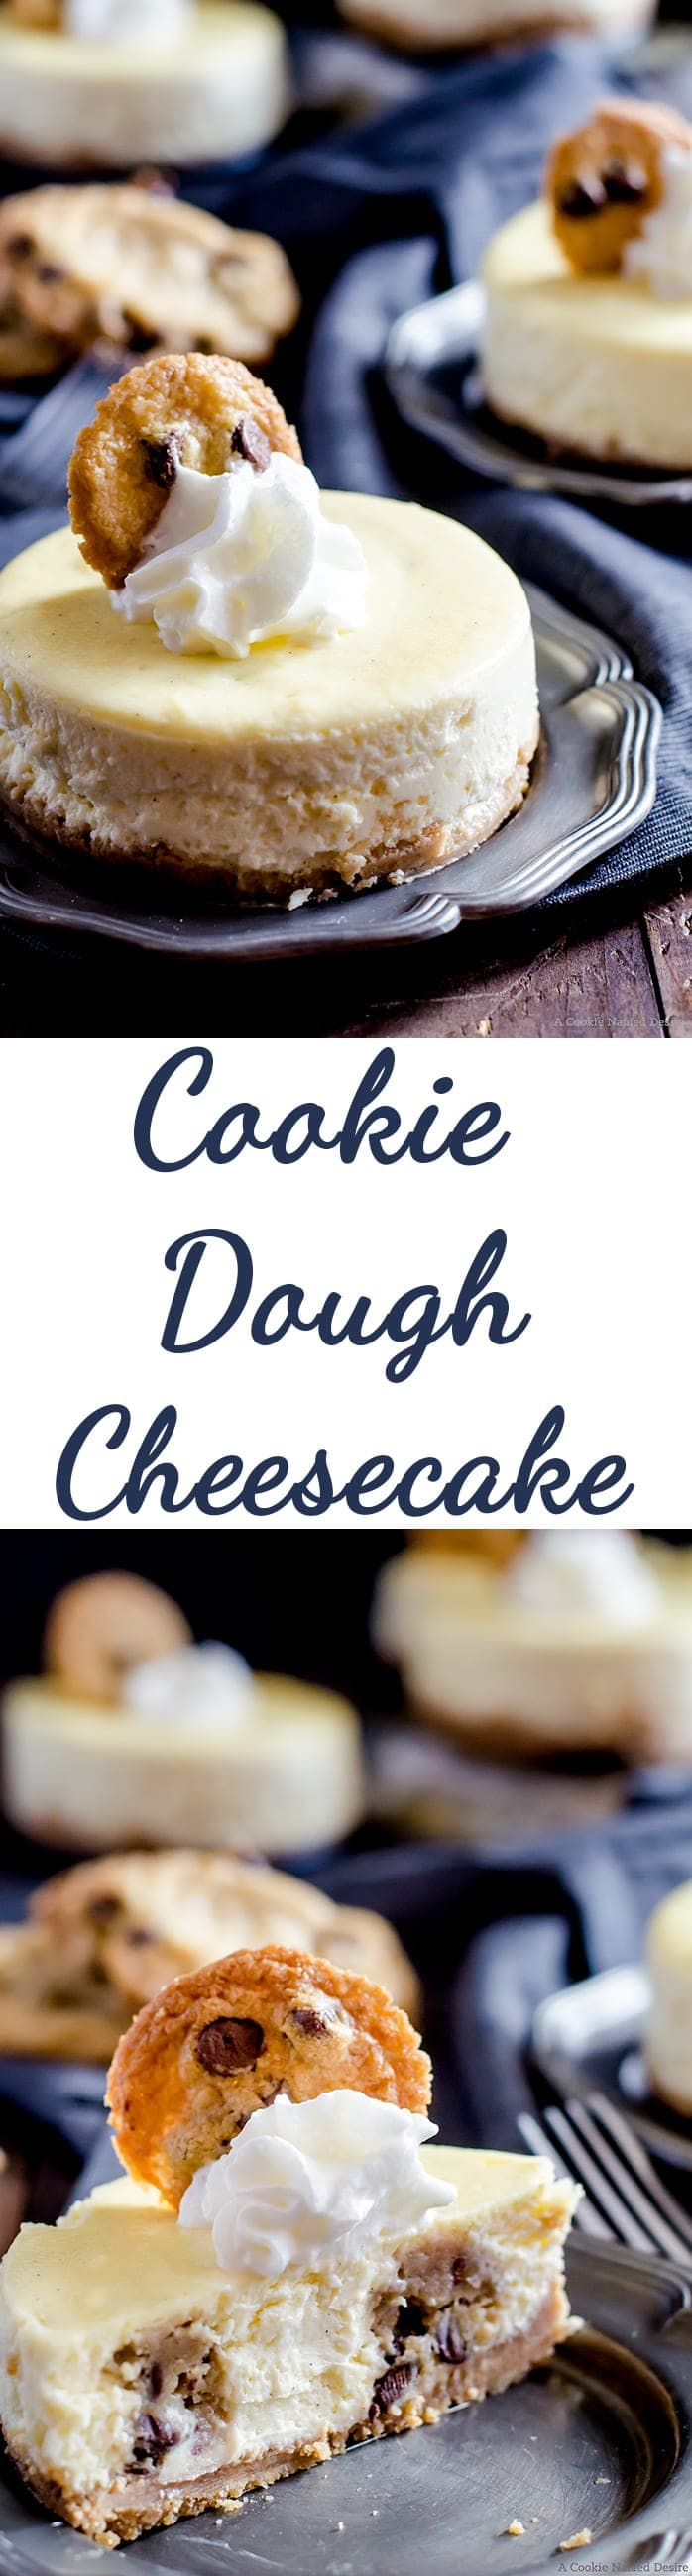 Mini Chocolate Chip Cookie Dough Cheesecakes.... velvety smooth vanilla cheesecakes stuffed with chocolate chip cookie dough. Topped with fresh whipped cream and a mini chocolate chip cookie. The ultimate dessert-lovers treat